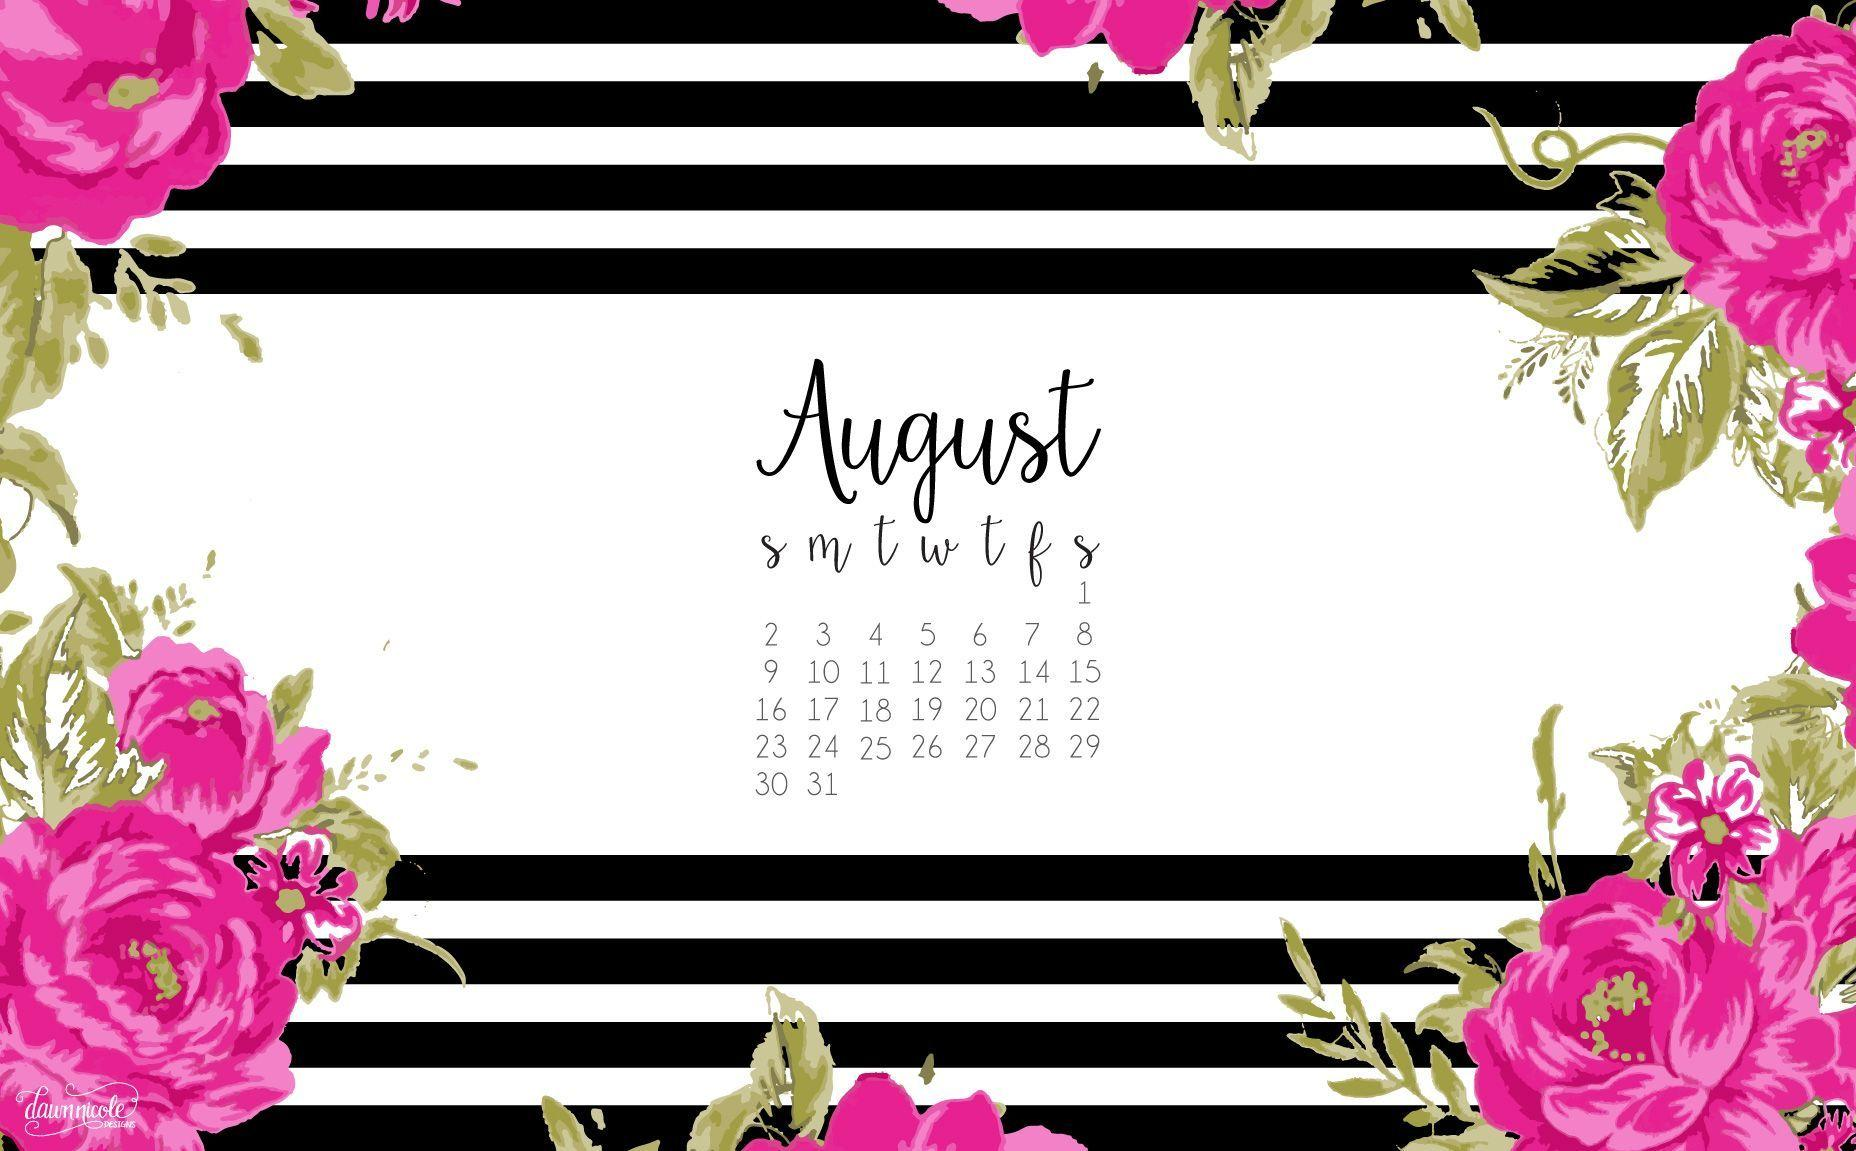 Calendar Desktop Wallpaper August : Desktop wallpapers calendar august wallpaper cave